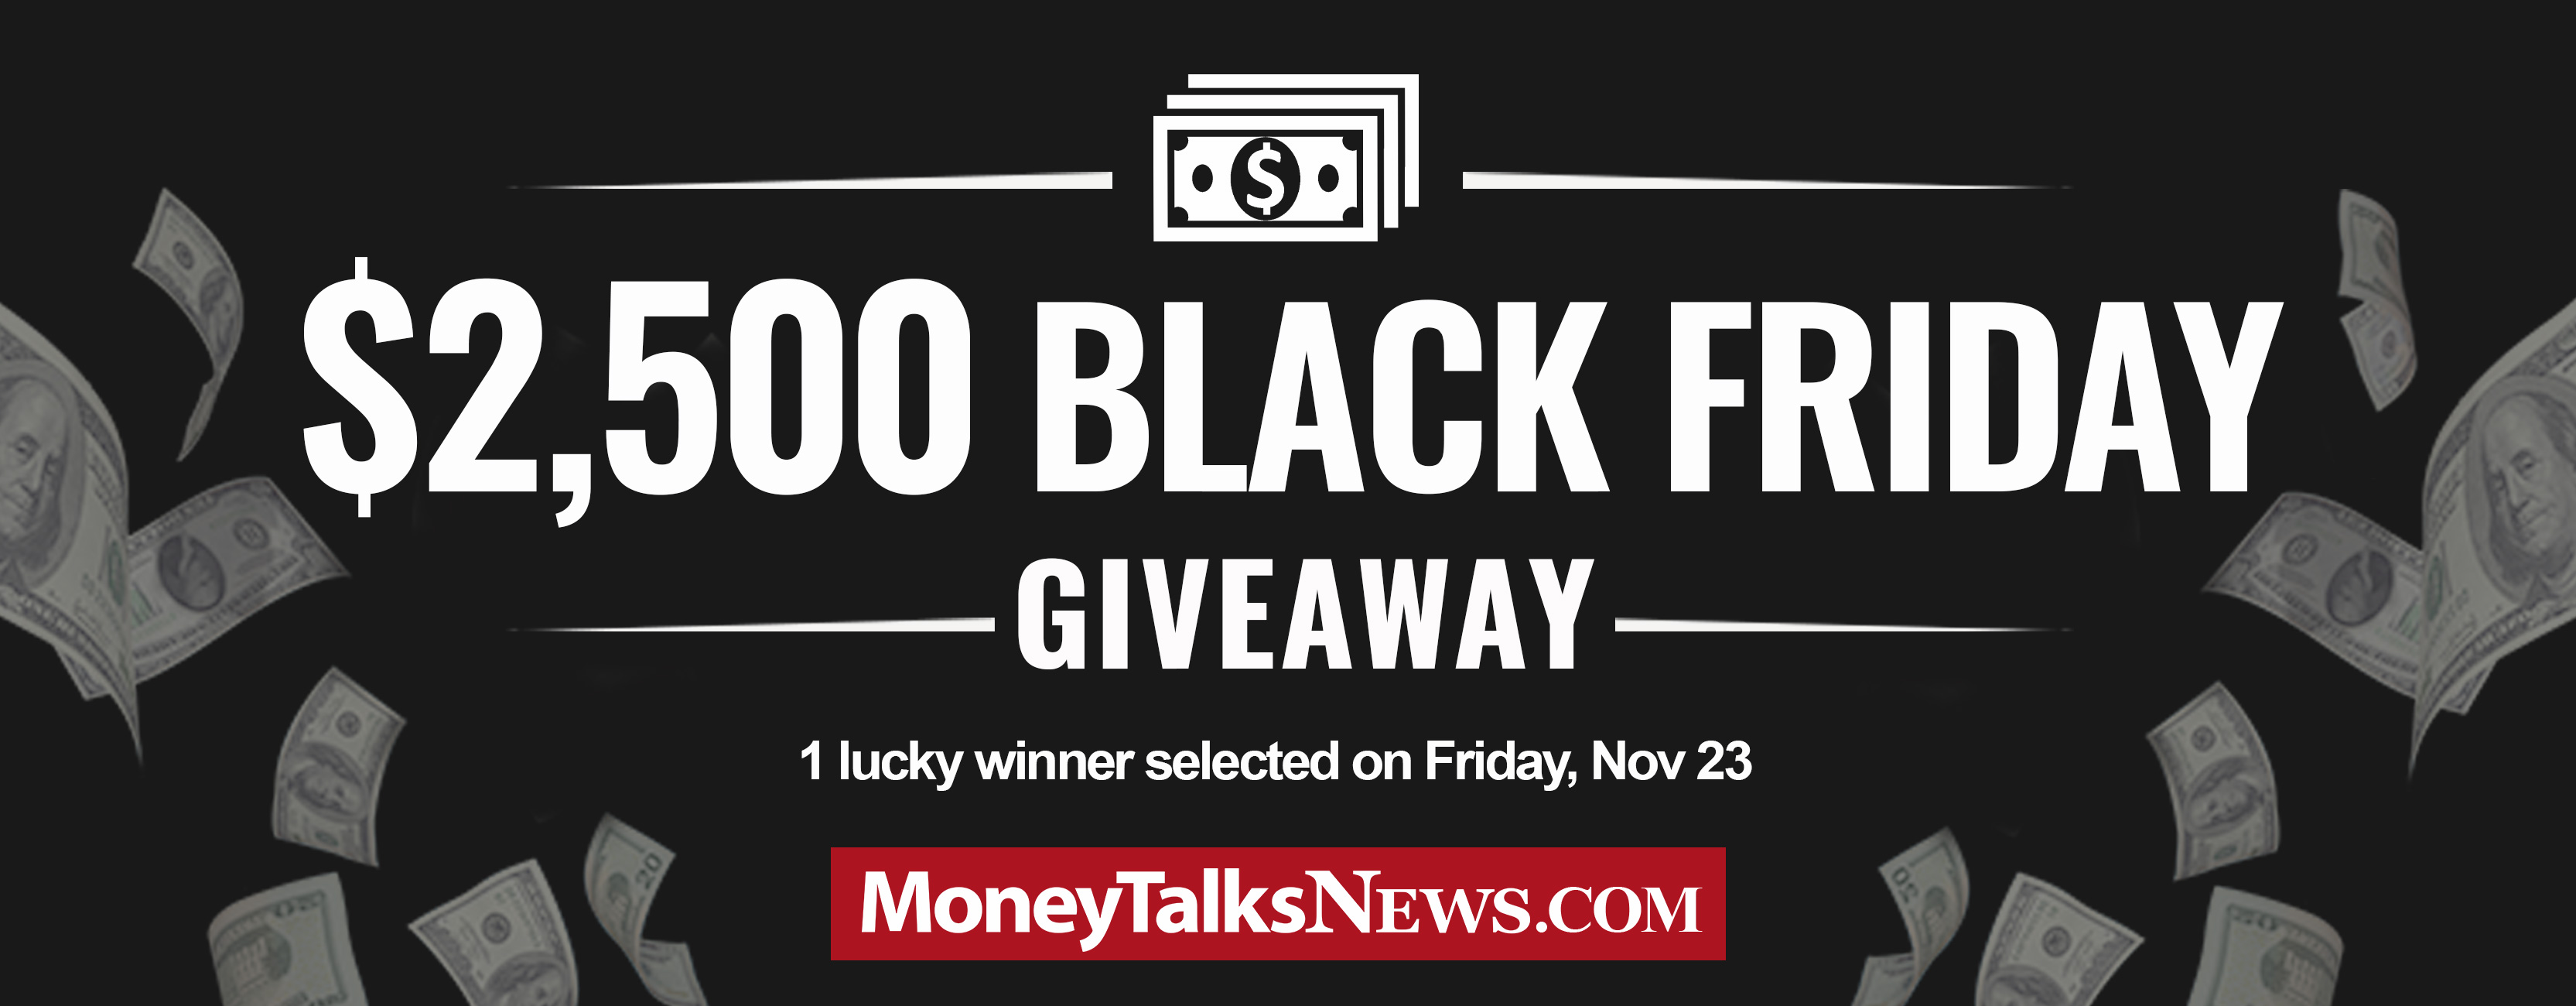 Giveaway iphone xr deals black friday